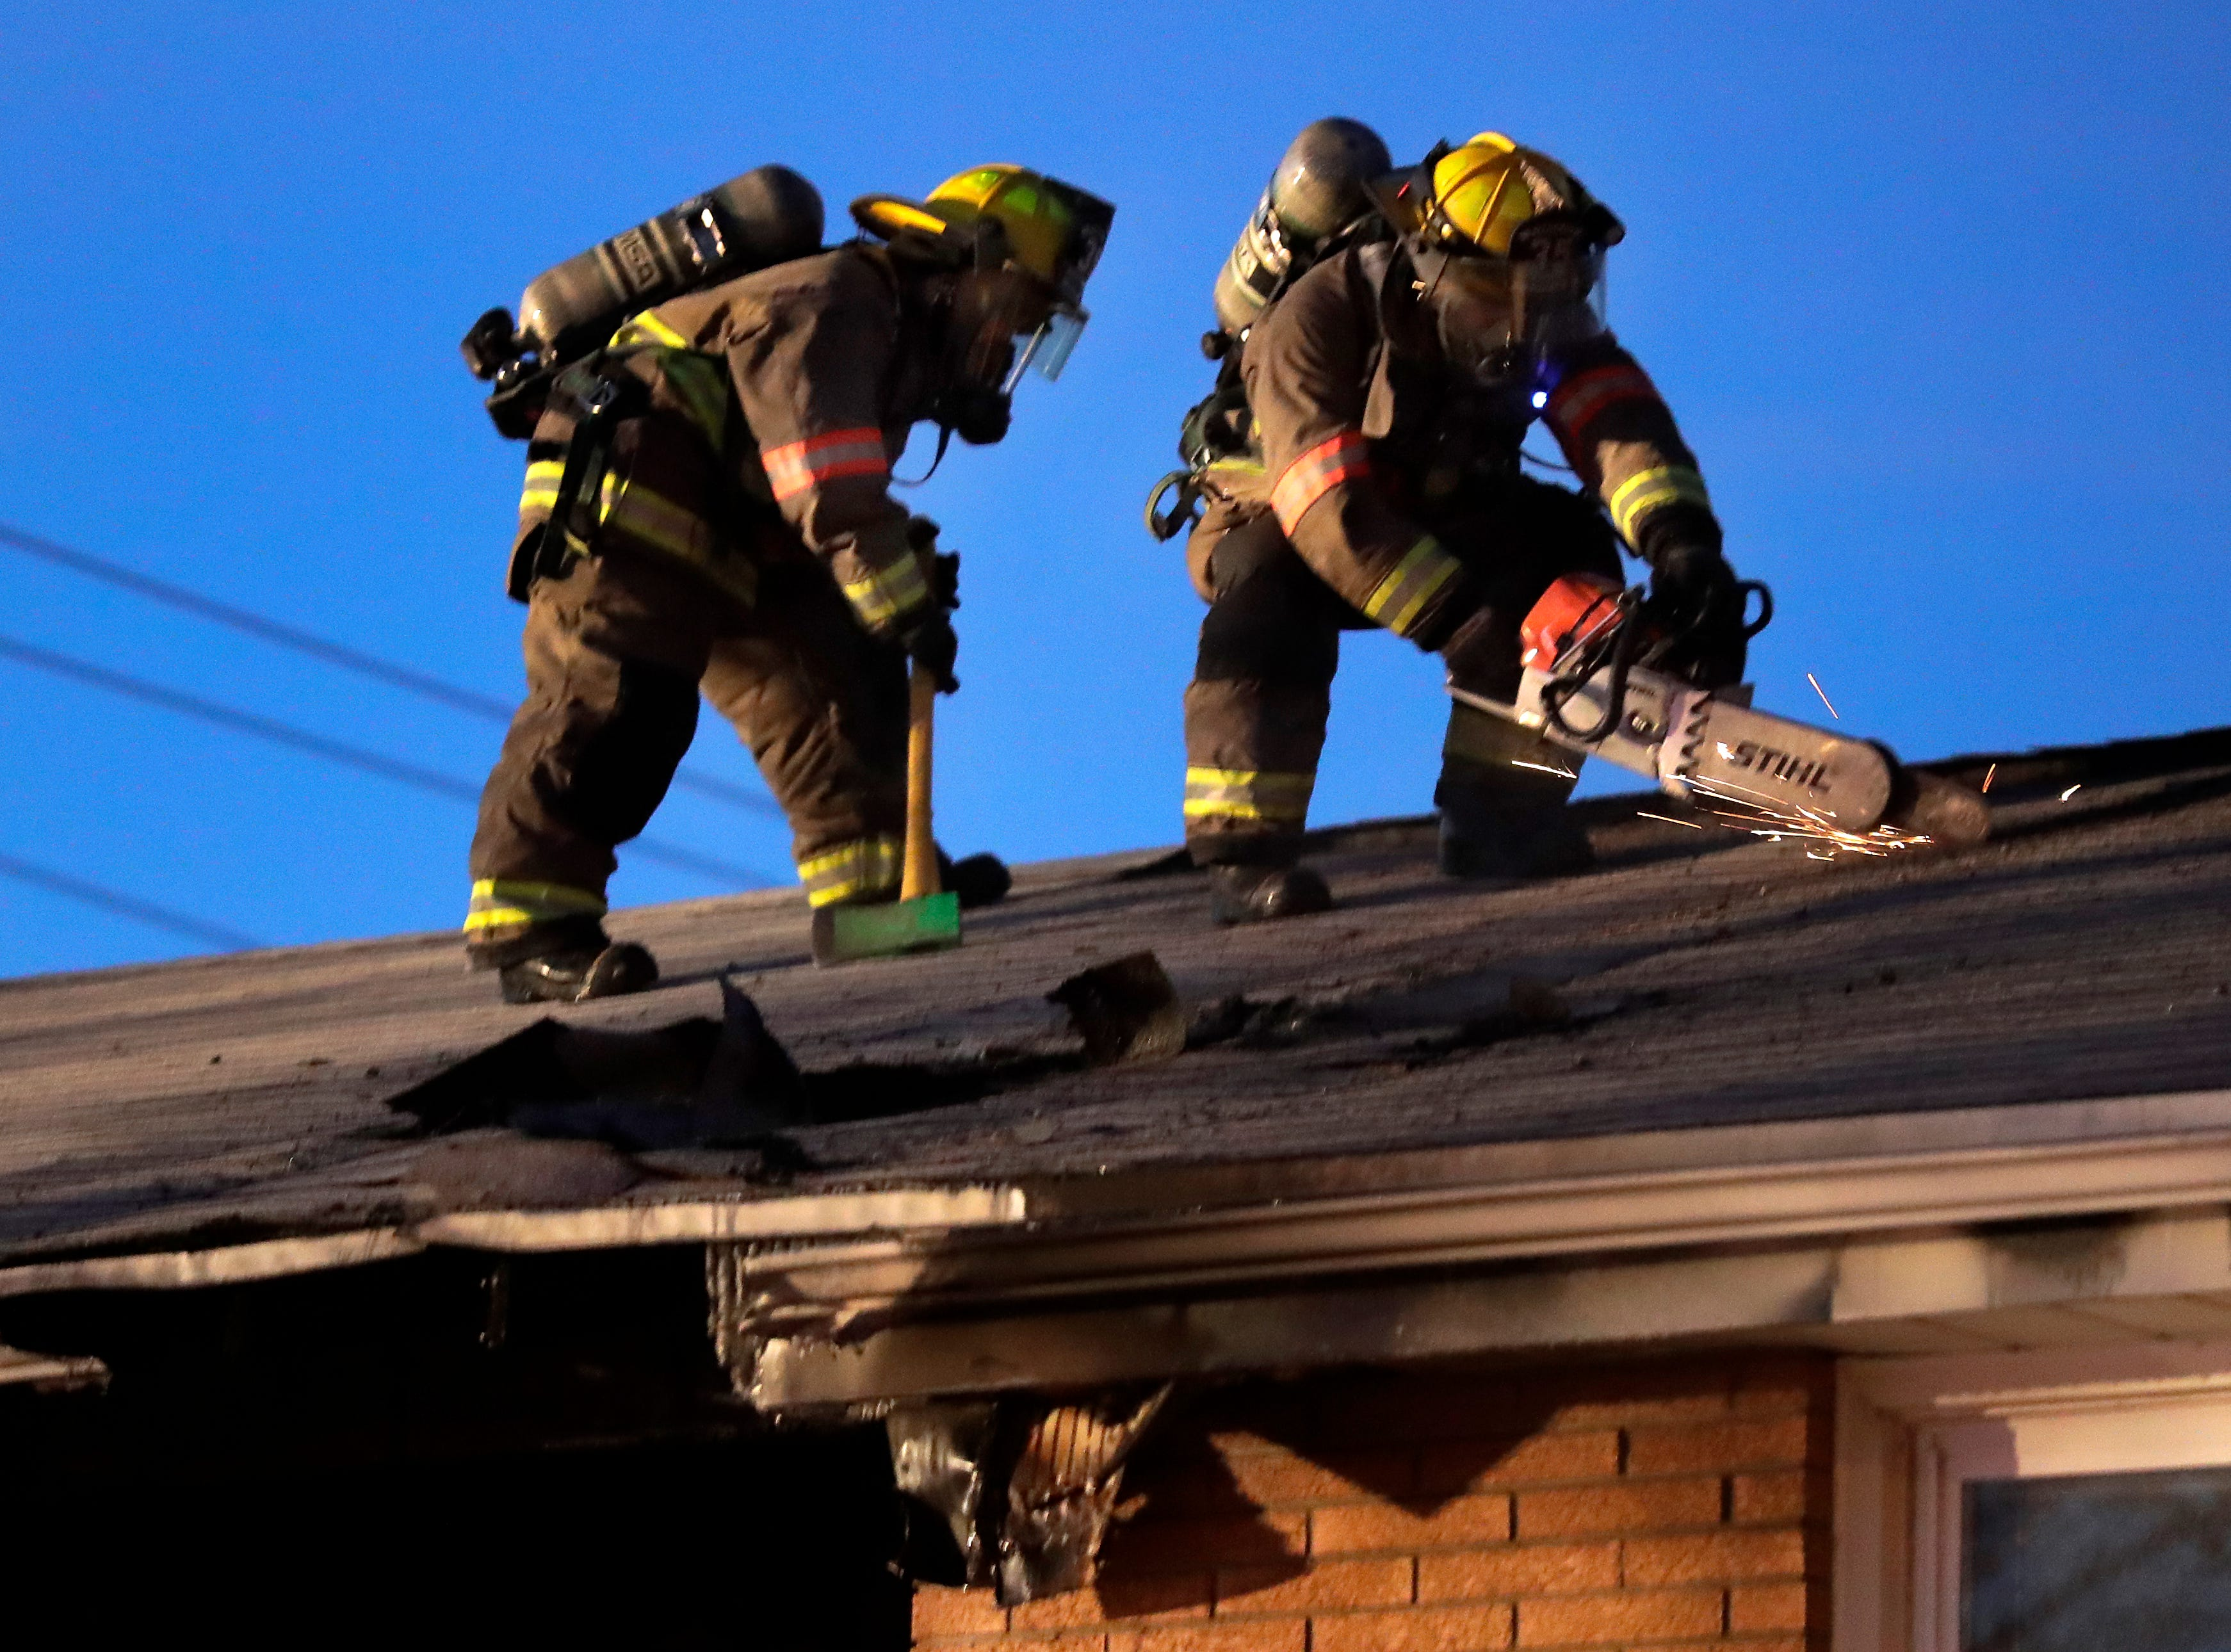 Firefighters from the Kimberly Fire Department on the scene of a second story fire in an apartment building on the1500 block of W. Fourth St. on Saturday, January 5, 2019, in Kimberly, Wis.Wm. Glasheen/USA TODAY NETWORK-Wisconsin.